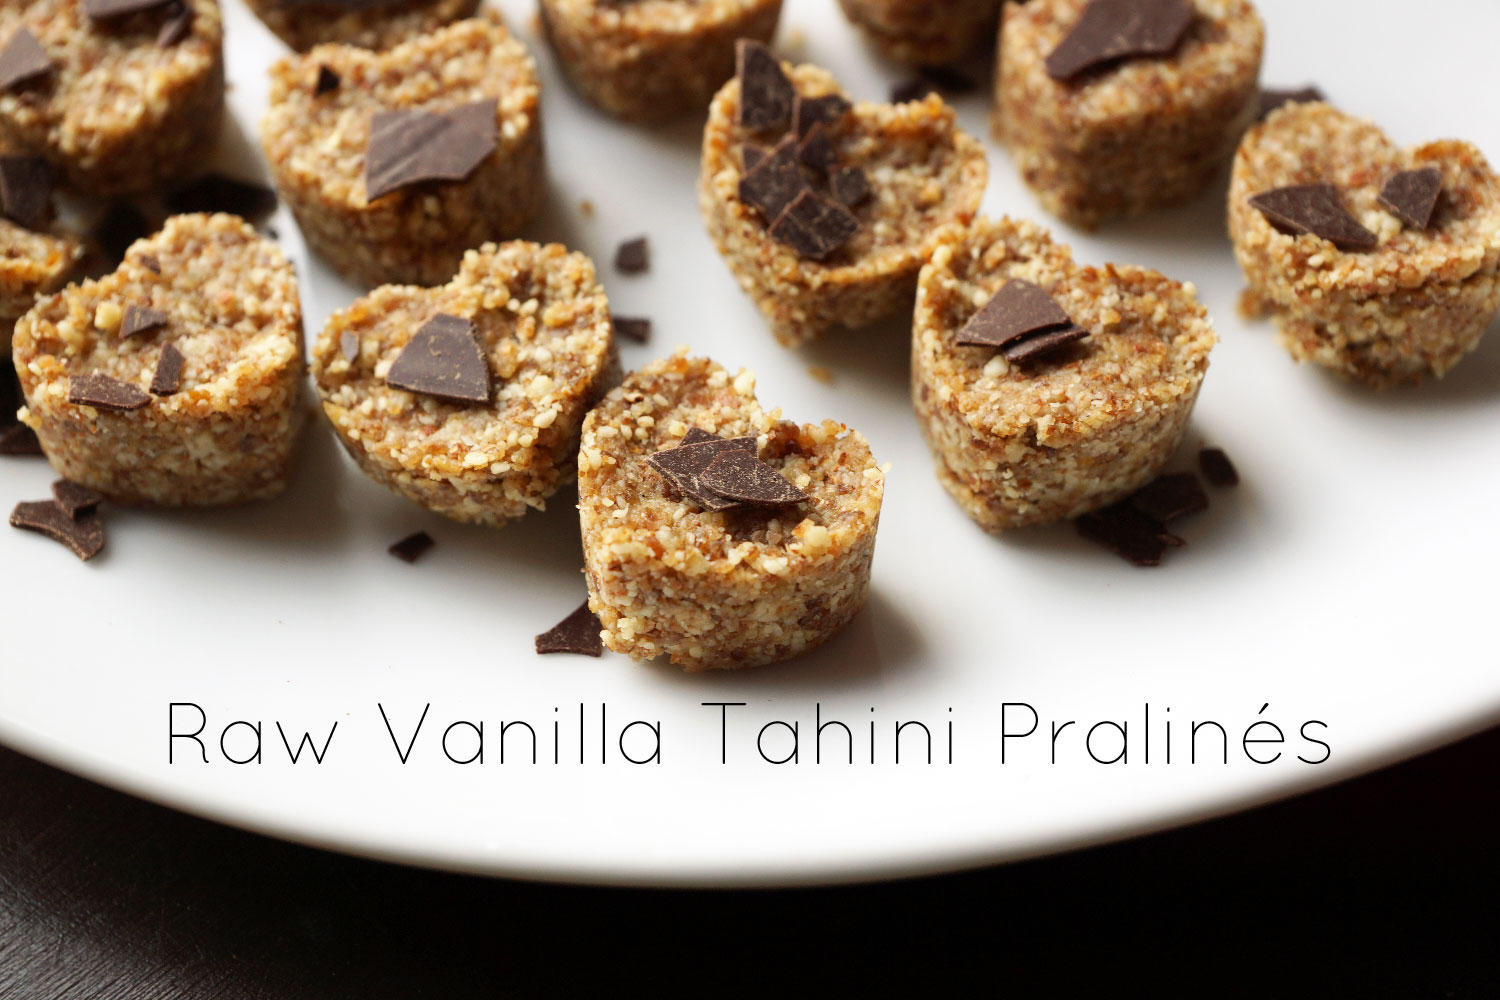 Raw Vanilla Tahini Pralines | Raw snacks